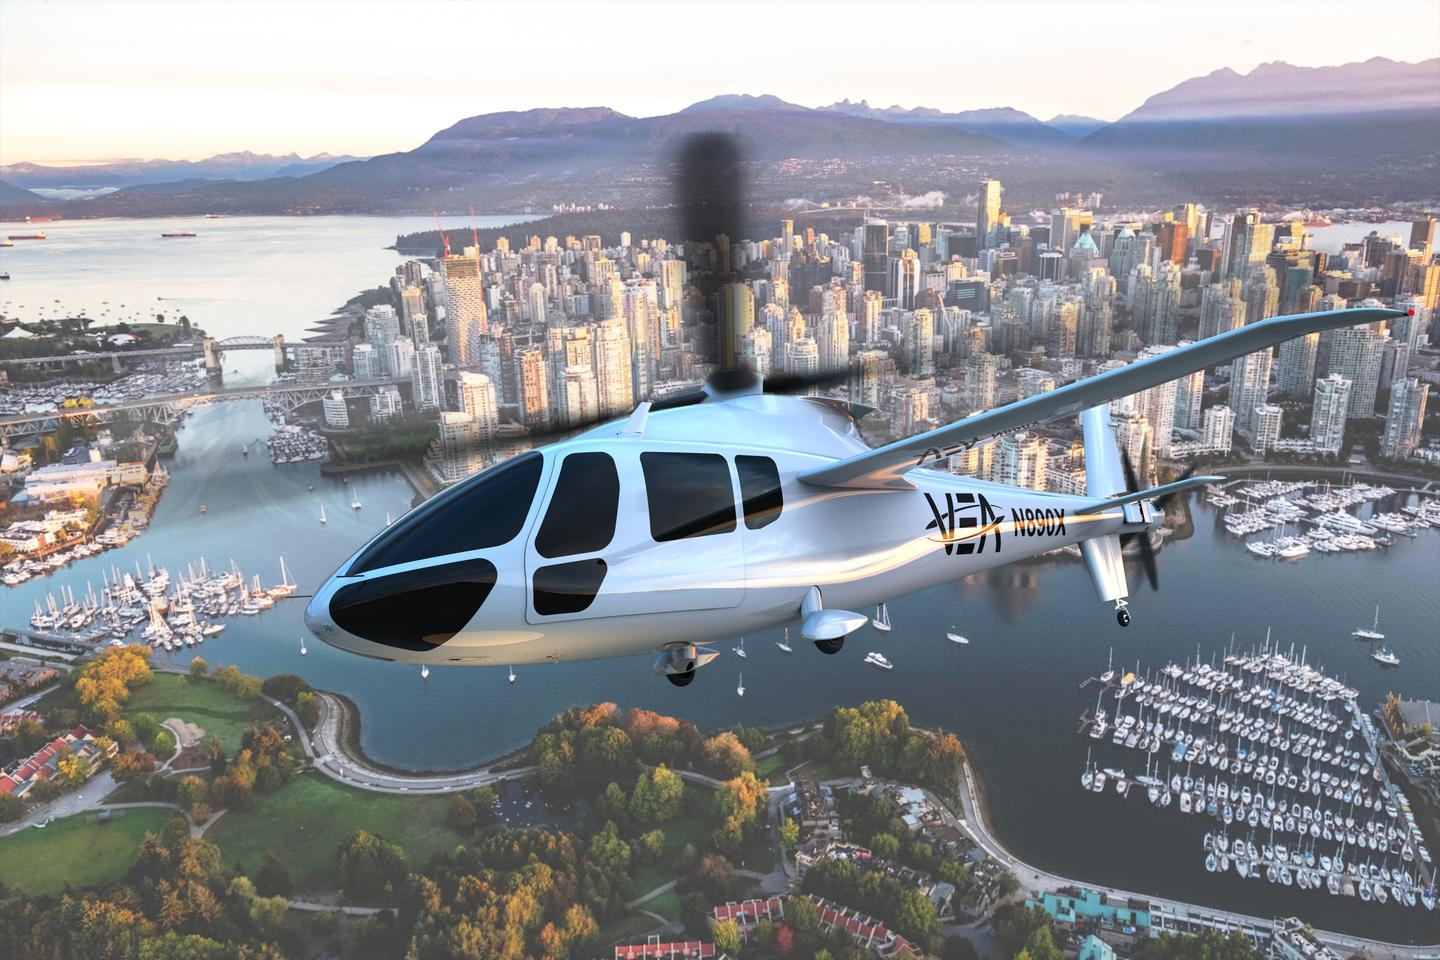 Piasecki's PA-890 slowed-rotor compound helicopter is targeted for certification and commercial production by 2025 – a fuel cell-powered version aims to be the world's first manned hydrogen helicopter